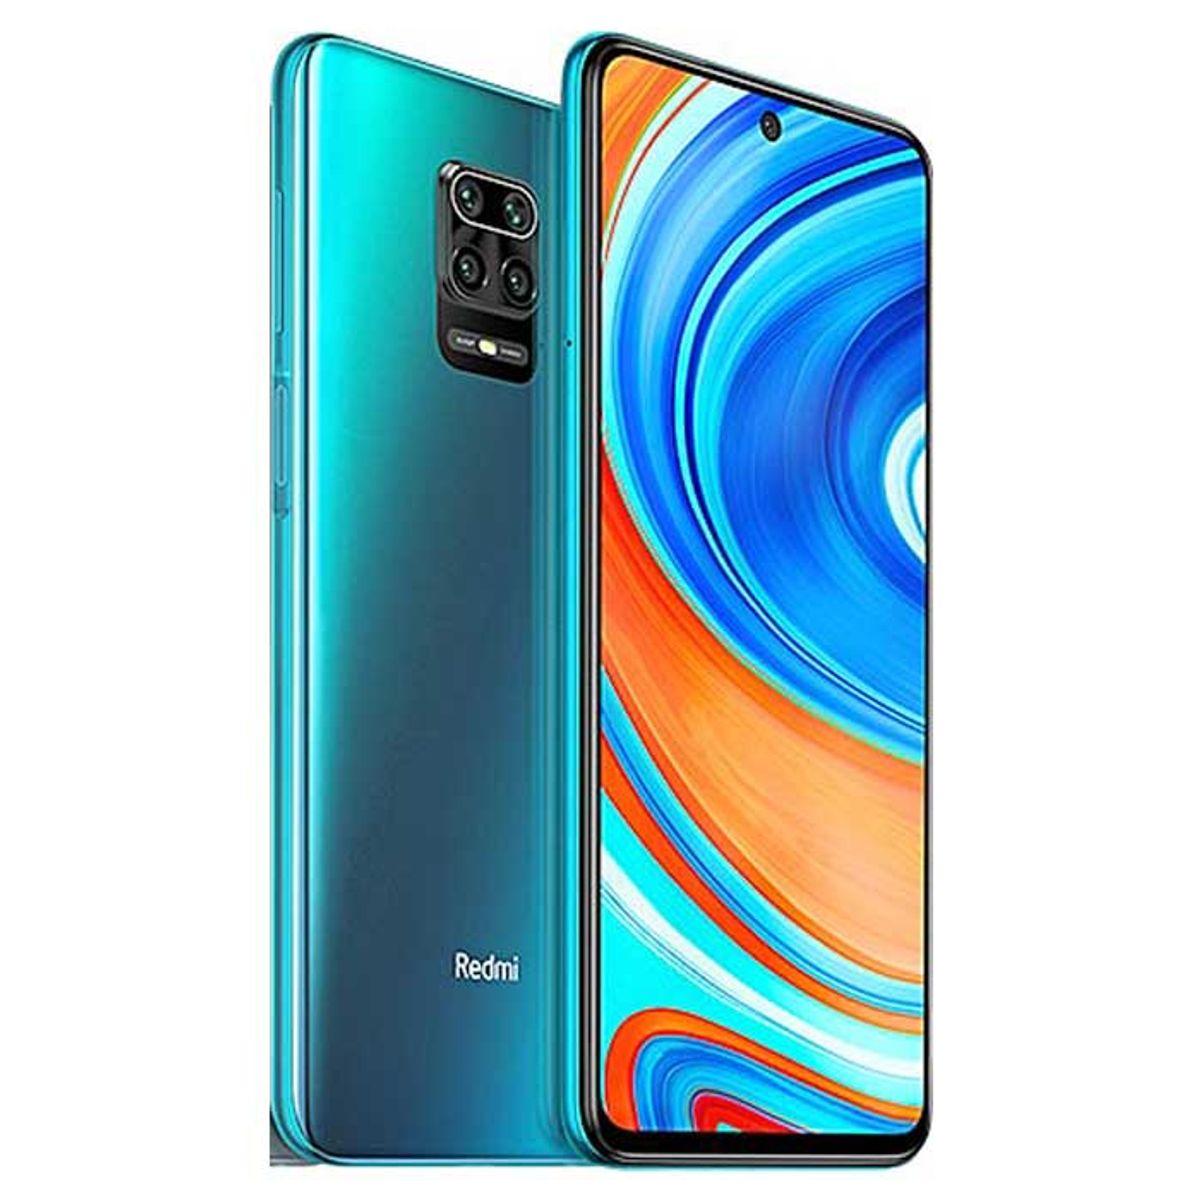 TOP 5 MOBILE PHONES UNDER Rs 15000 BUDGET JULY 2020